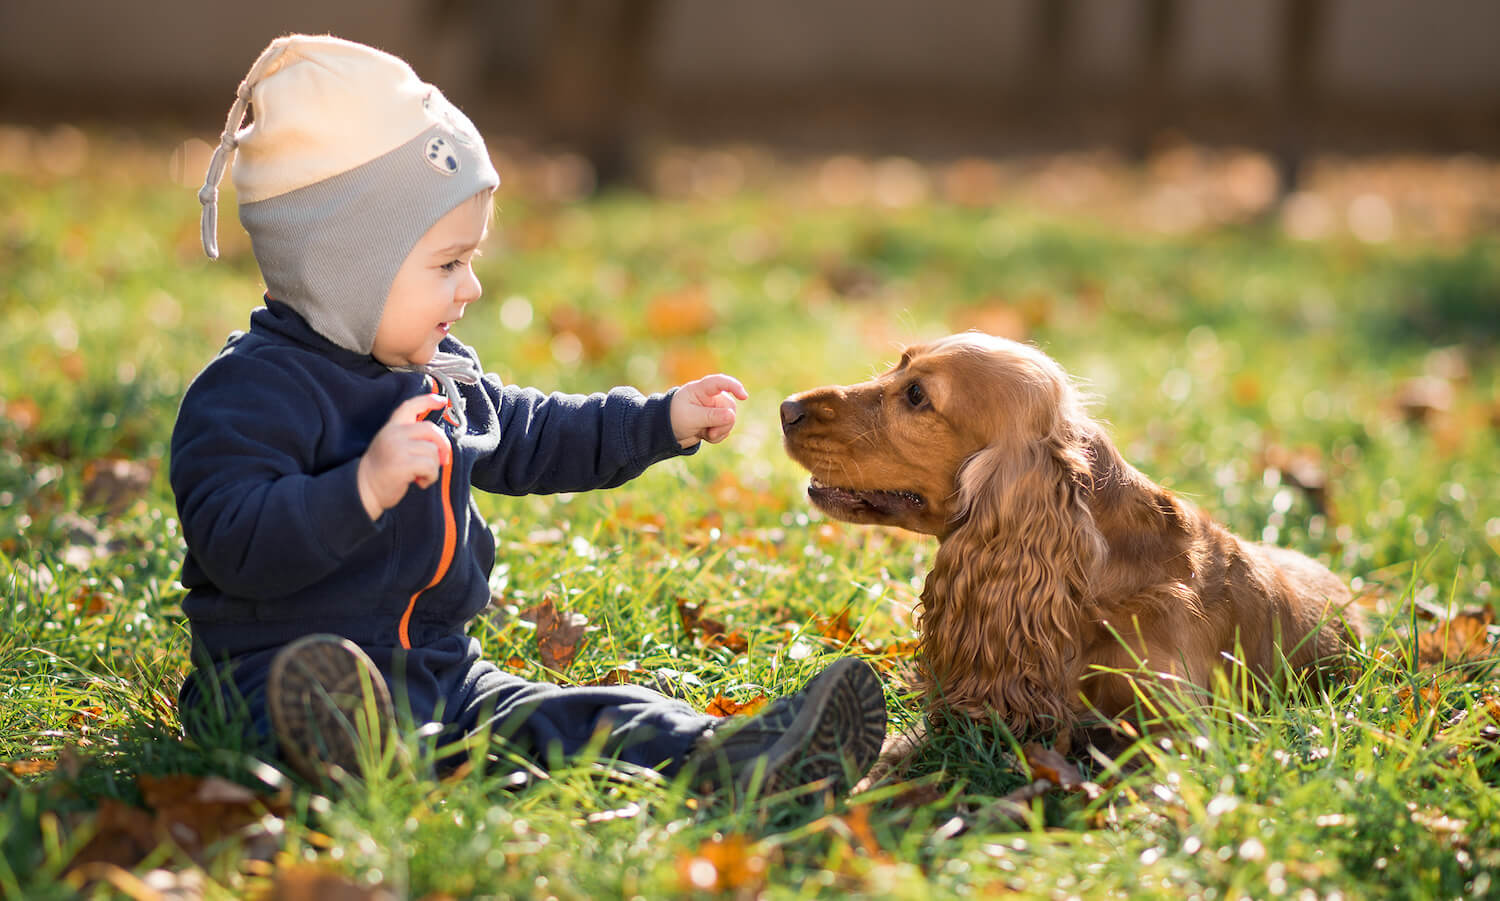 boy-sitting-on-the-grass-with-a-dog-PHGV25G